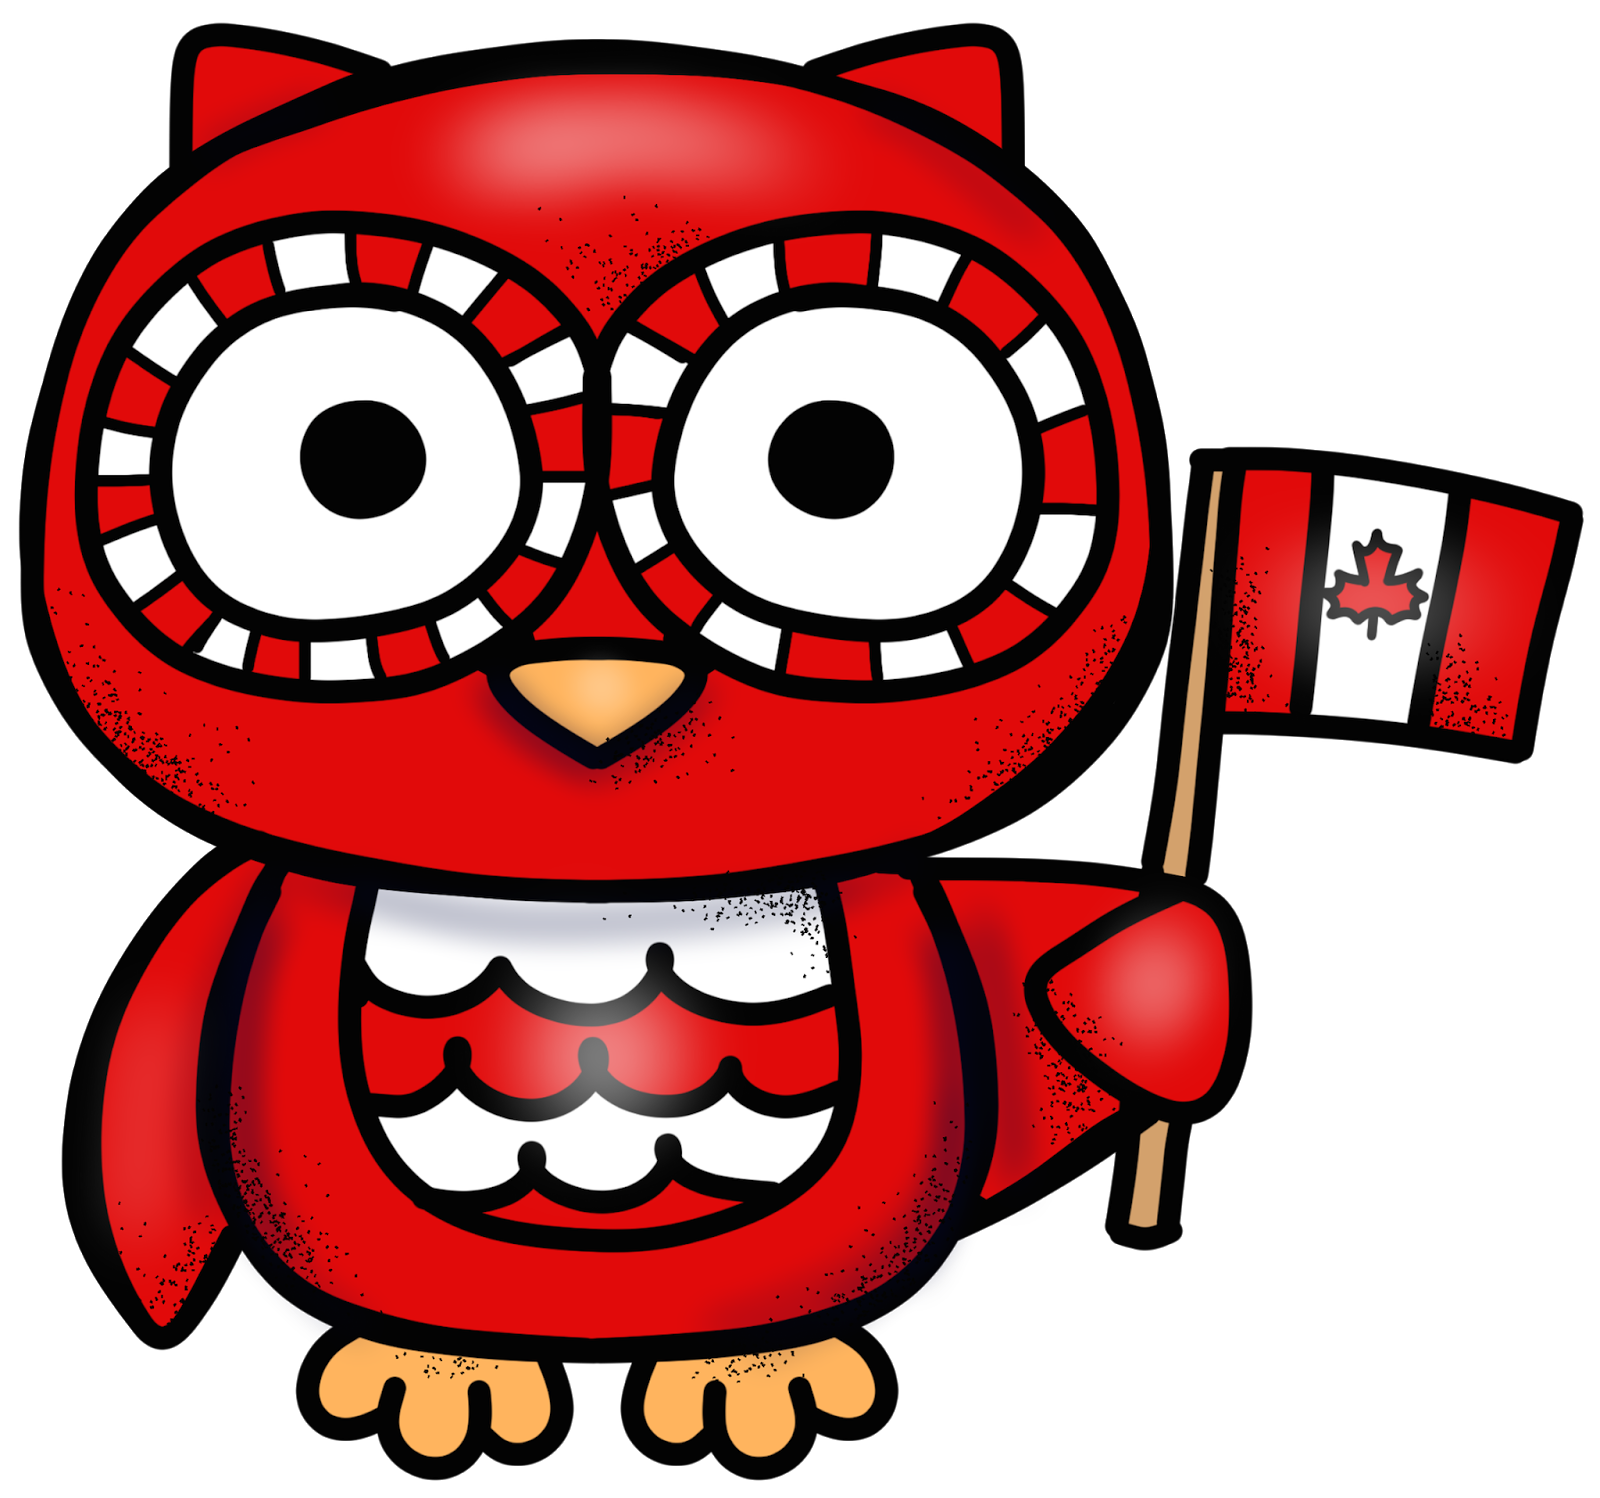 Educlips design freebie canada. Owls clipart red